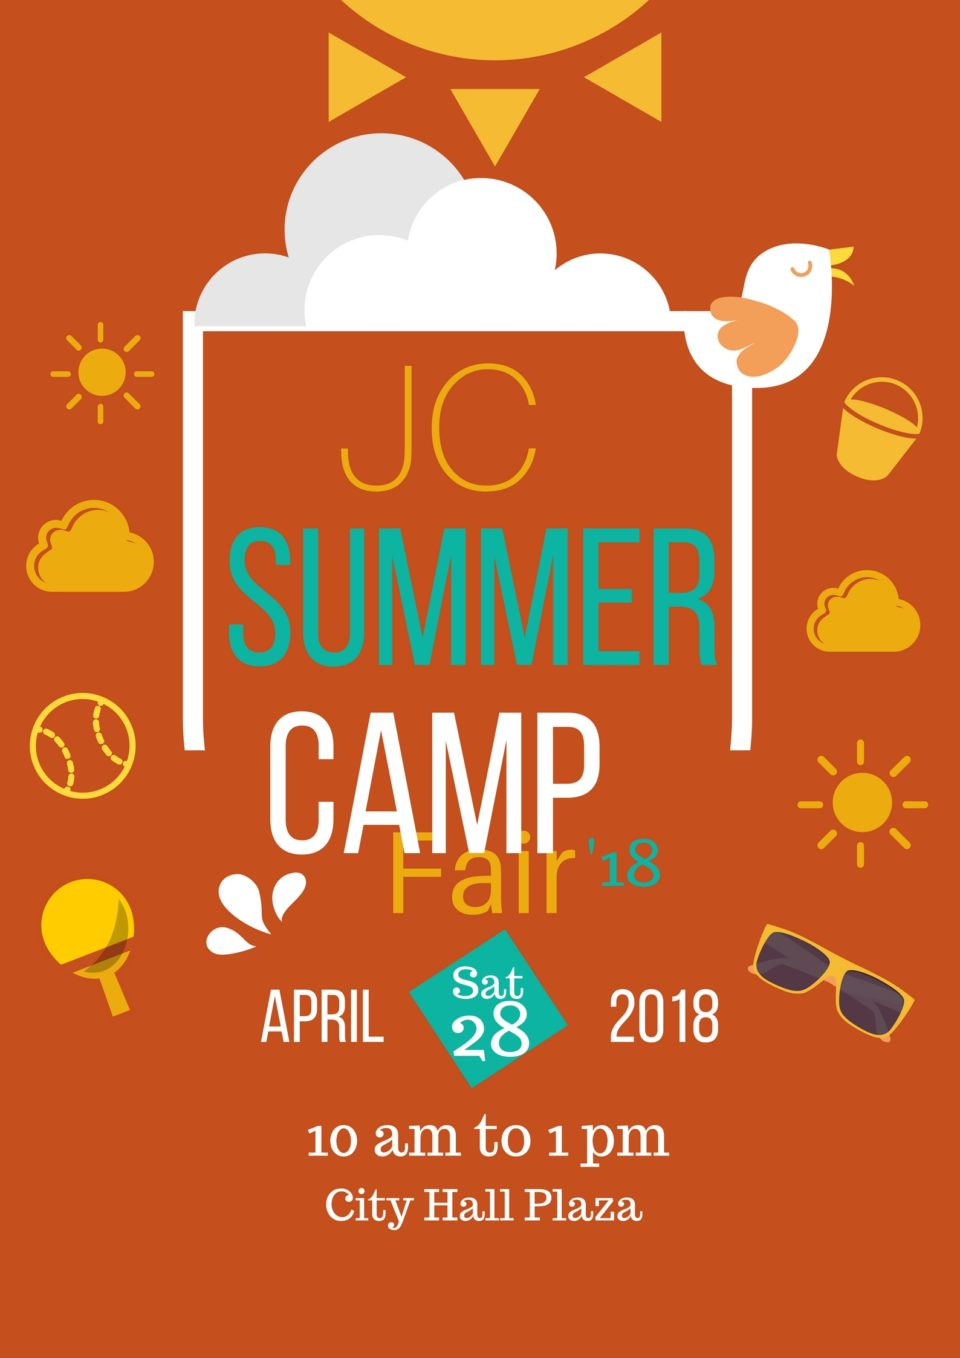 JC Summer Camp Fair'18